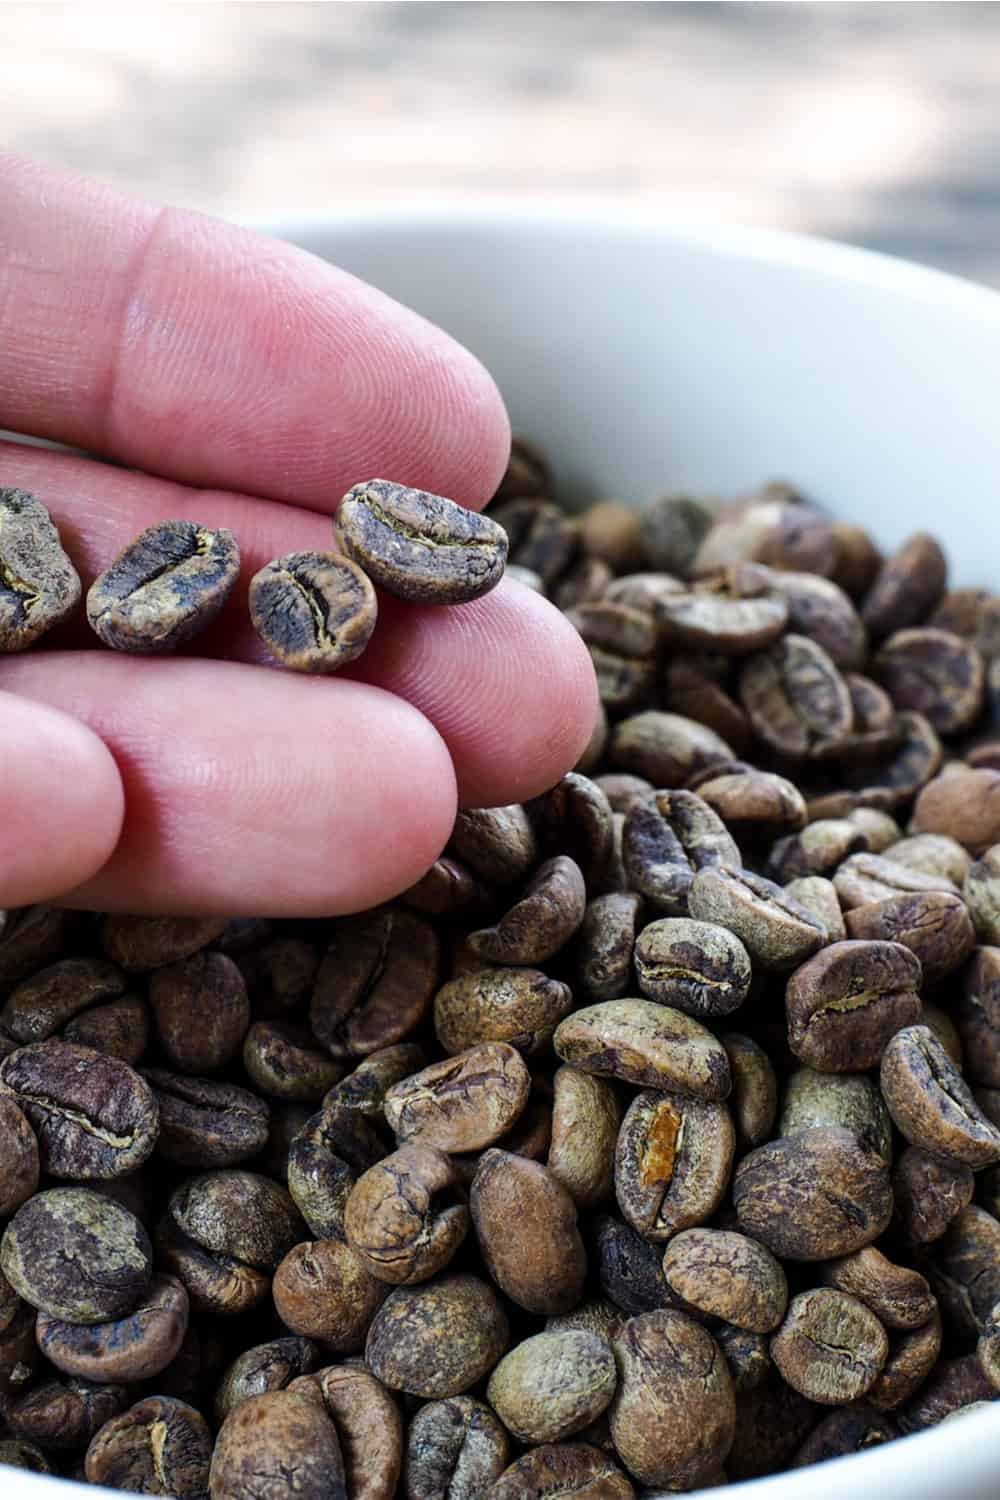 How to tell coffee Beans has Gone Bad